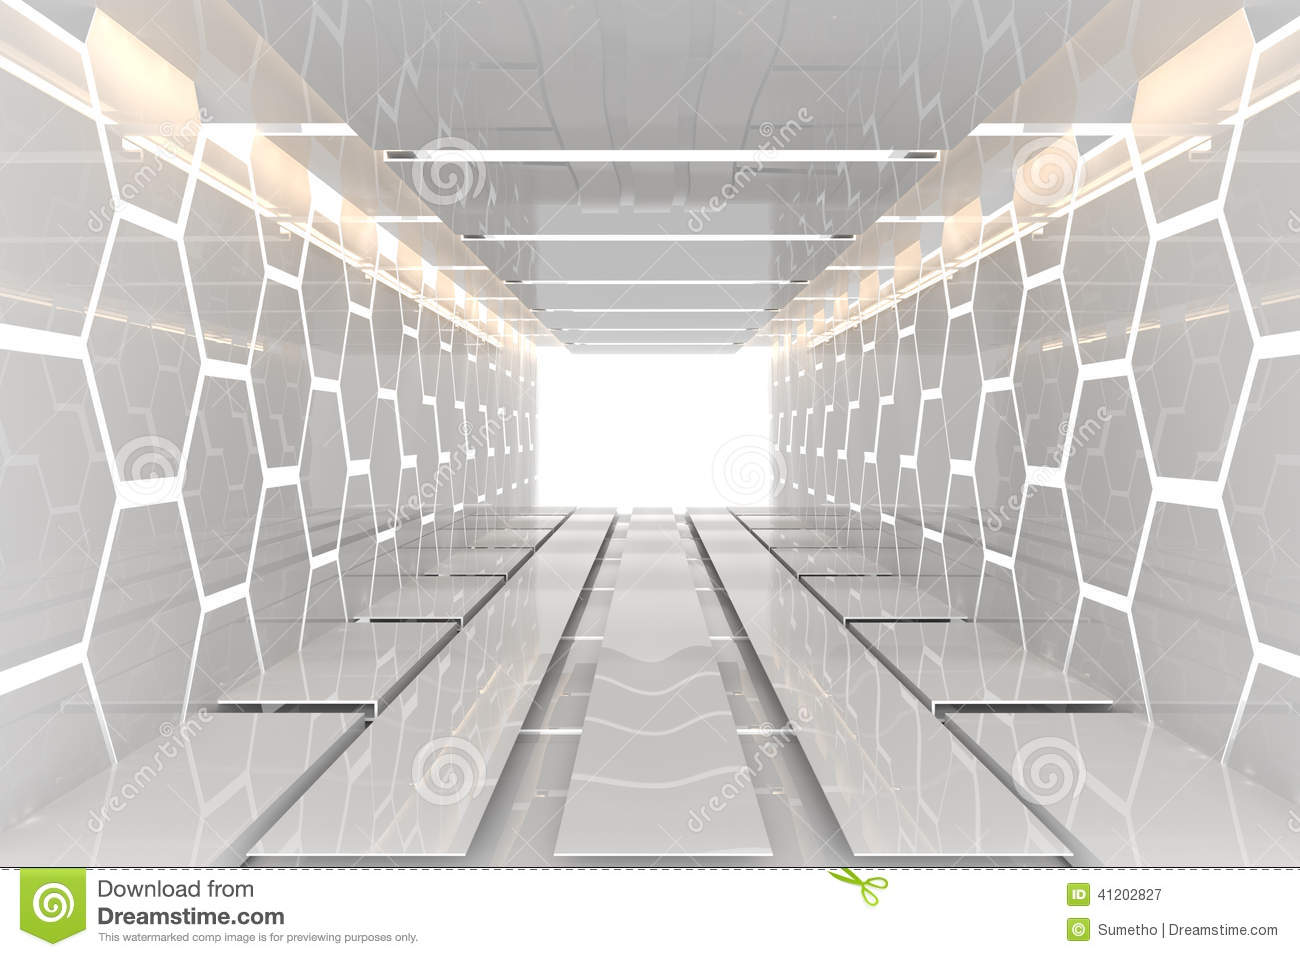 Decorate A Room Online Free Futuristic White Hexagon Room Stock Illustration Image